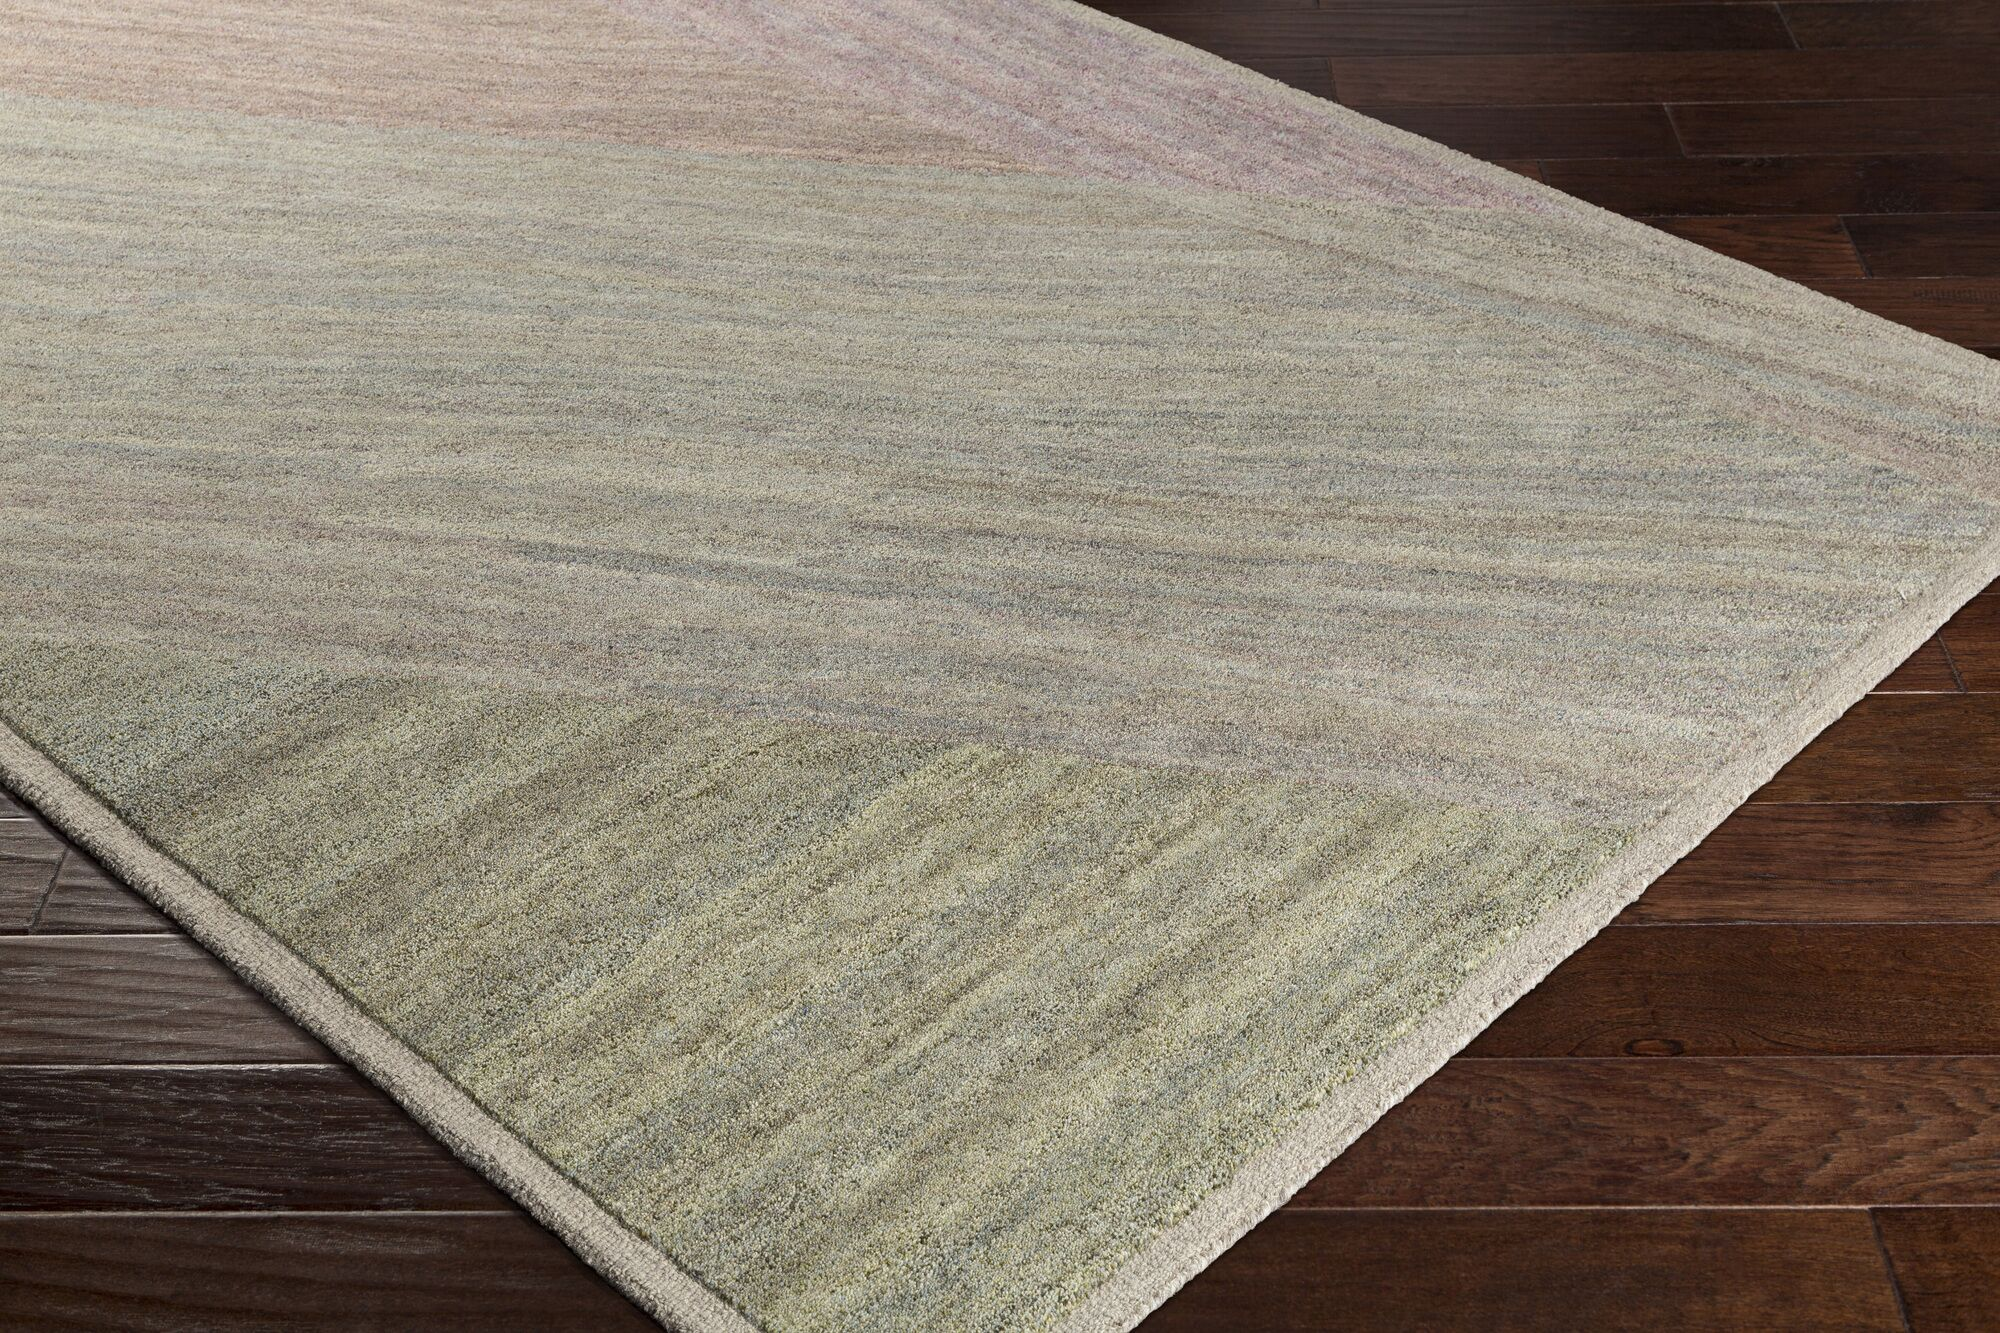 Ciccone Hand-Tufted Wool Ivory/Taupe Area Rug Rug Size: Rectangle 5' x 7'6